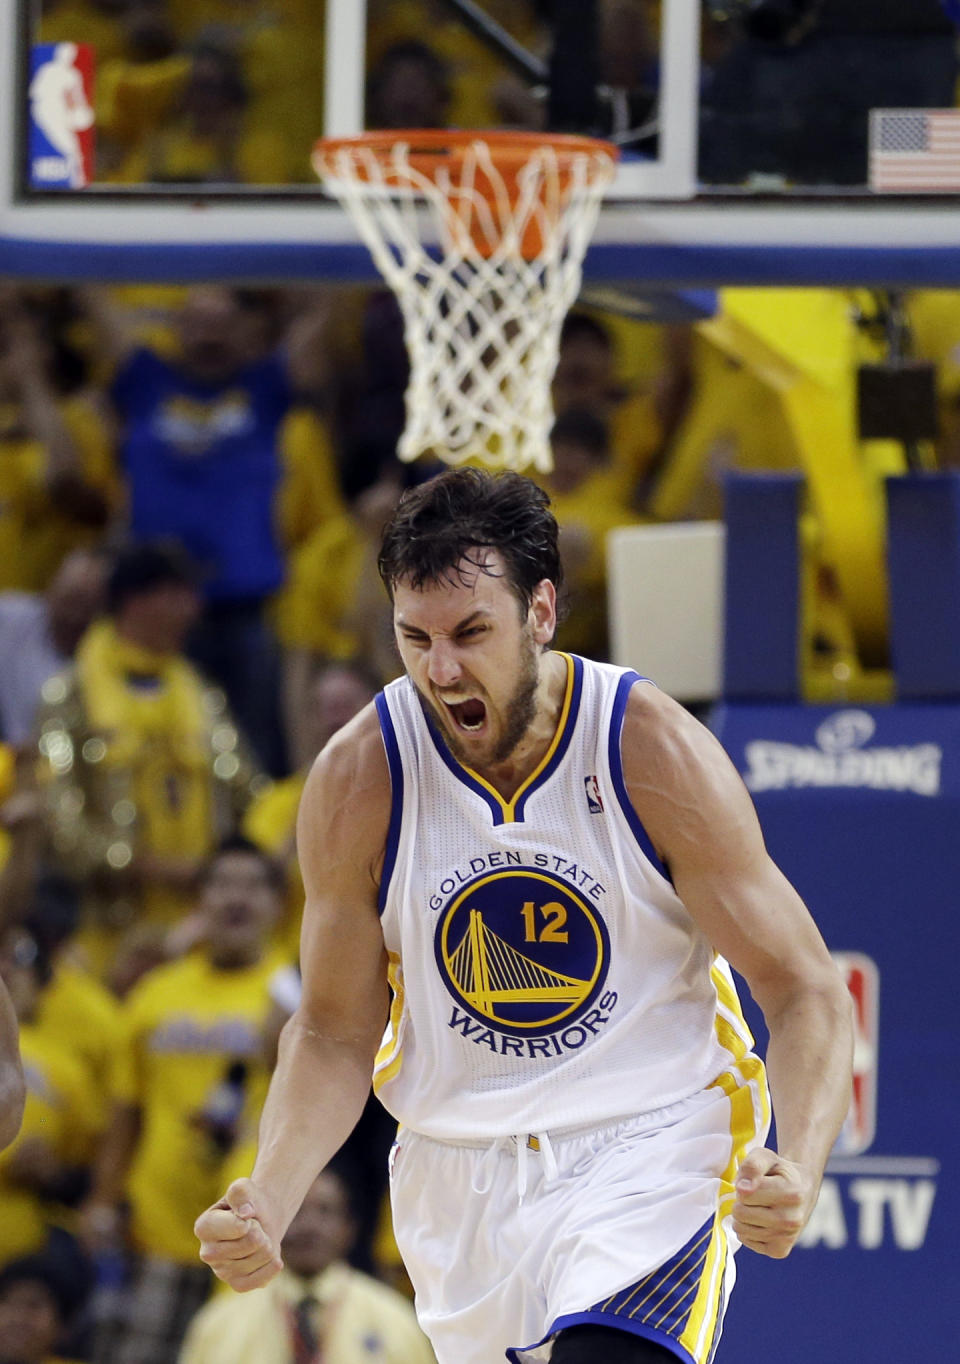 Golden State Warriors' Andrew Bogut reacts after scoring against the Denver Nuggets during the first half of Game 4 in a first-round NBA basketball playoff series, Sunday, April 28, 2013, in Oakland, Calif. (AP Photo/Ben Margot)